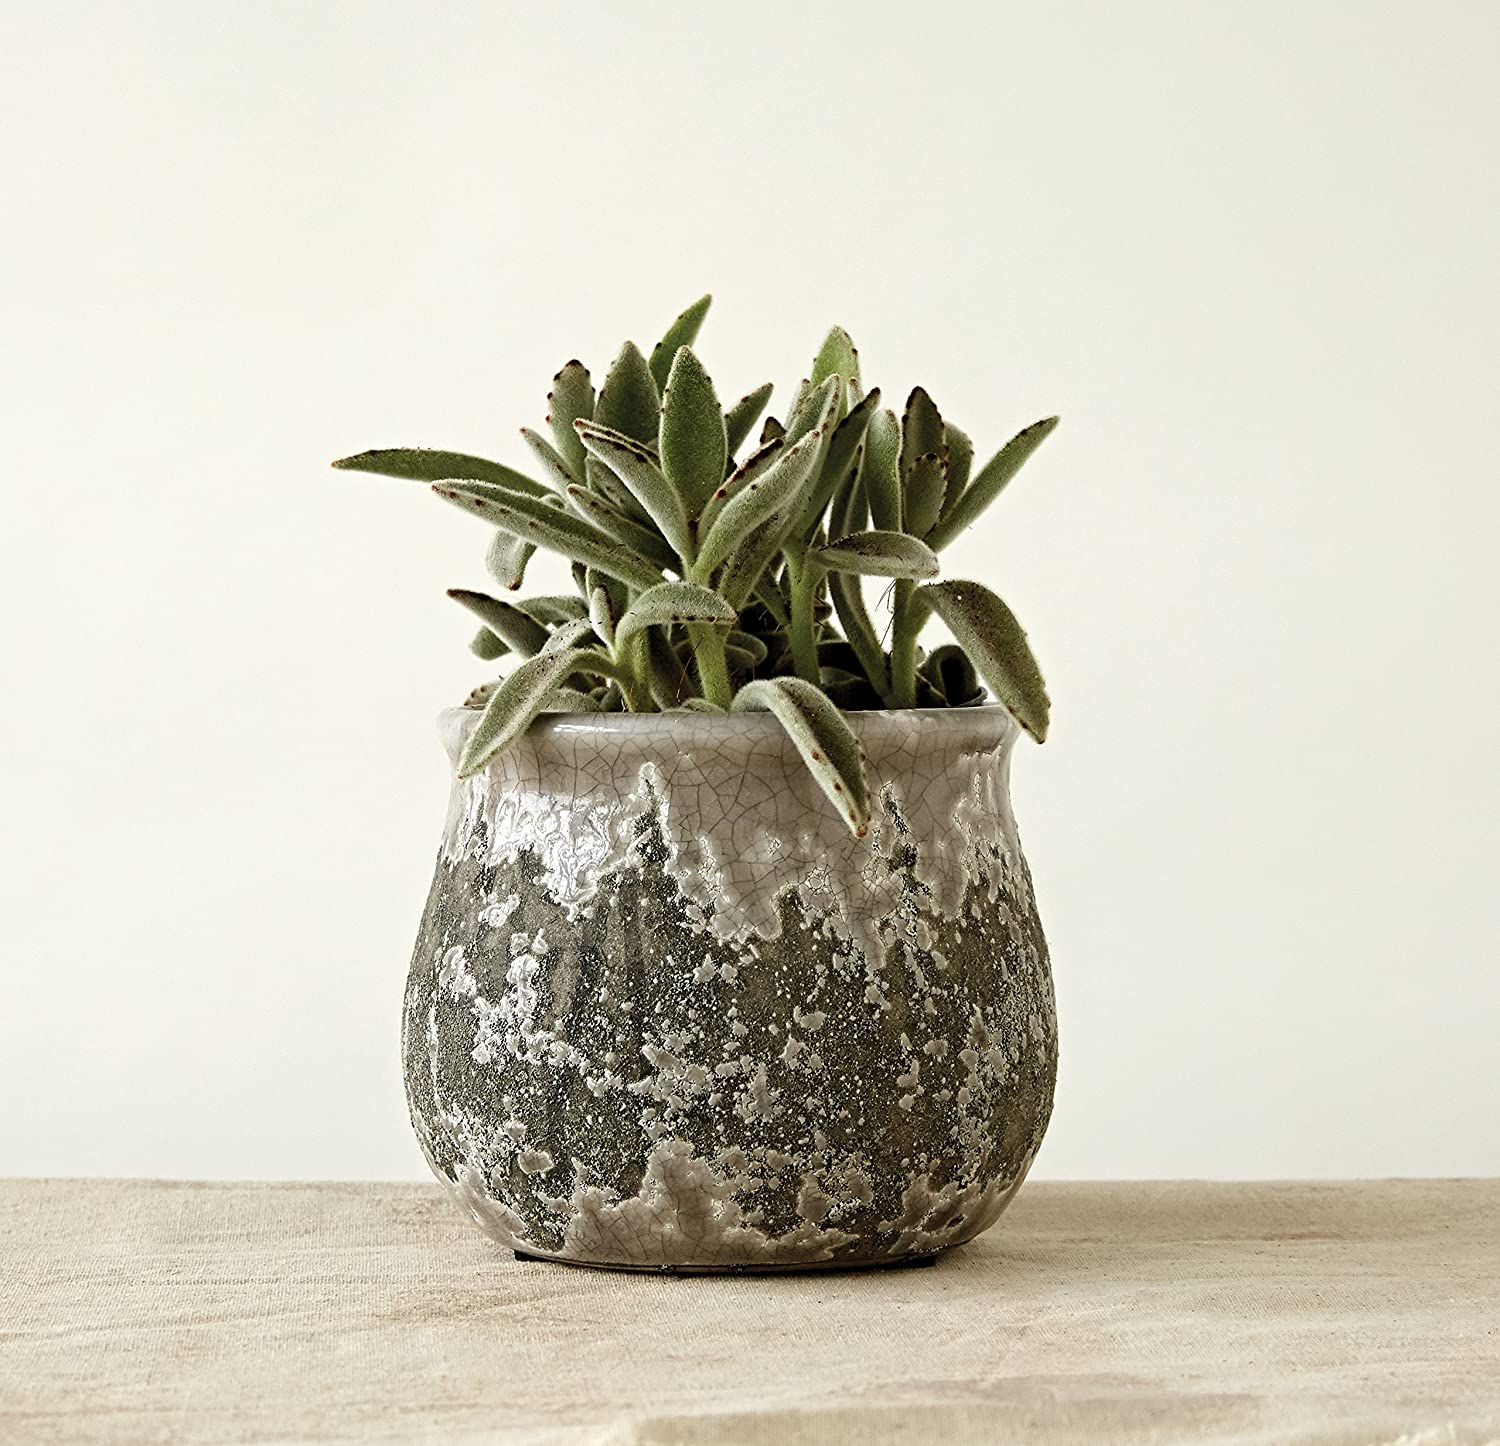 Distressed round grey terracotta planter for rustic country French farmhouse decorating and interior design.